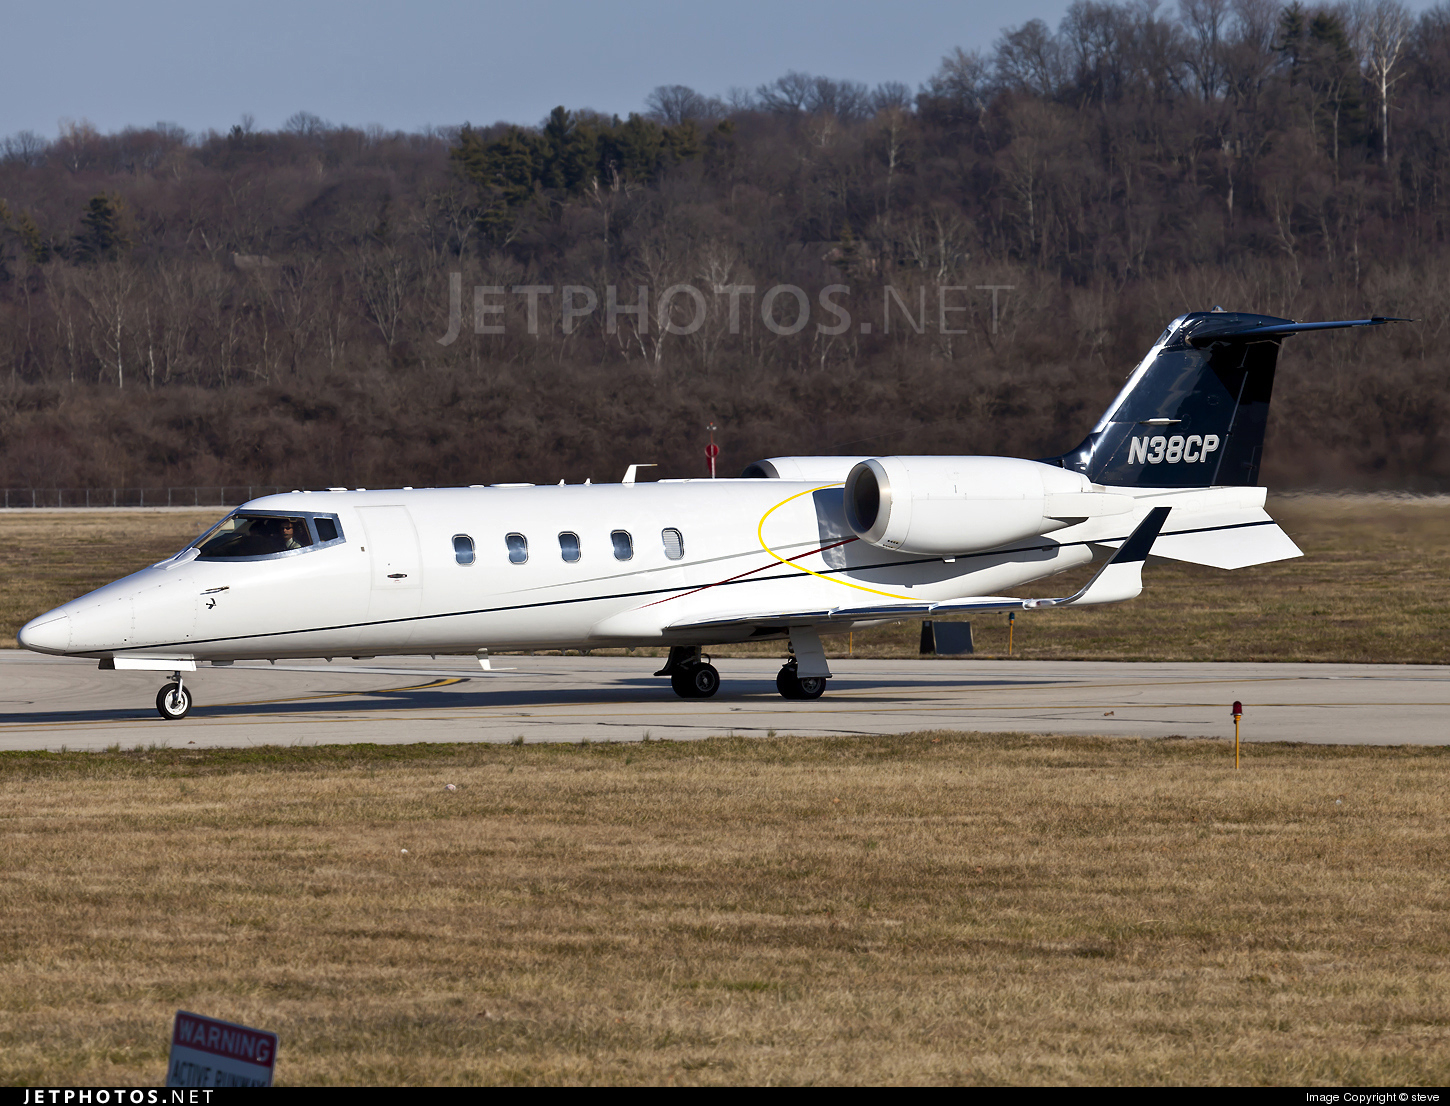 Photo of N38CP Bombardier Learjet 60 by steve